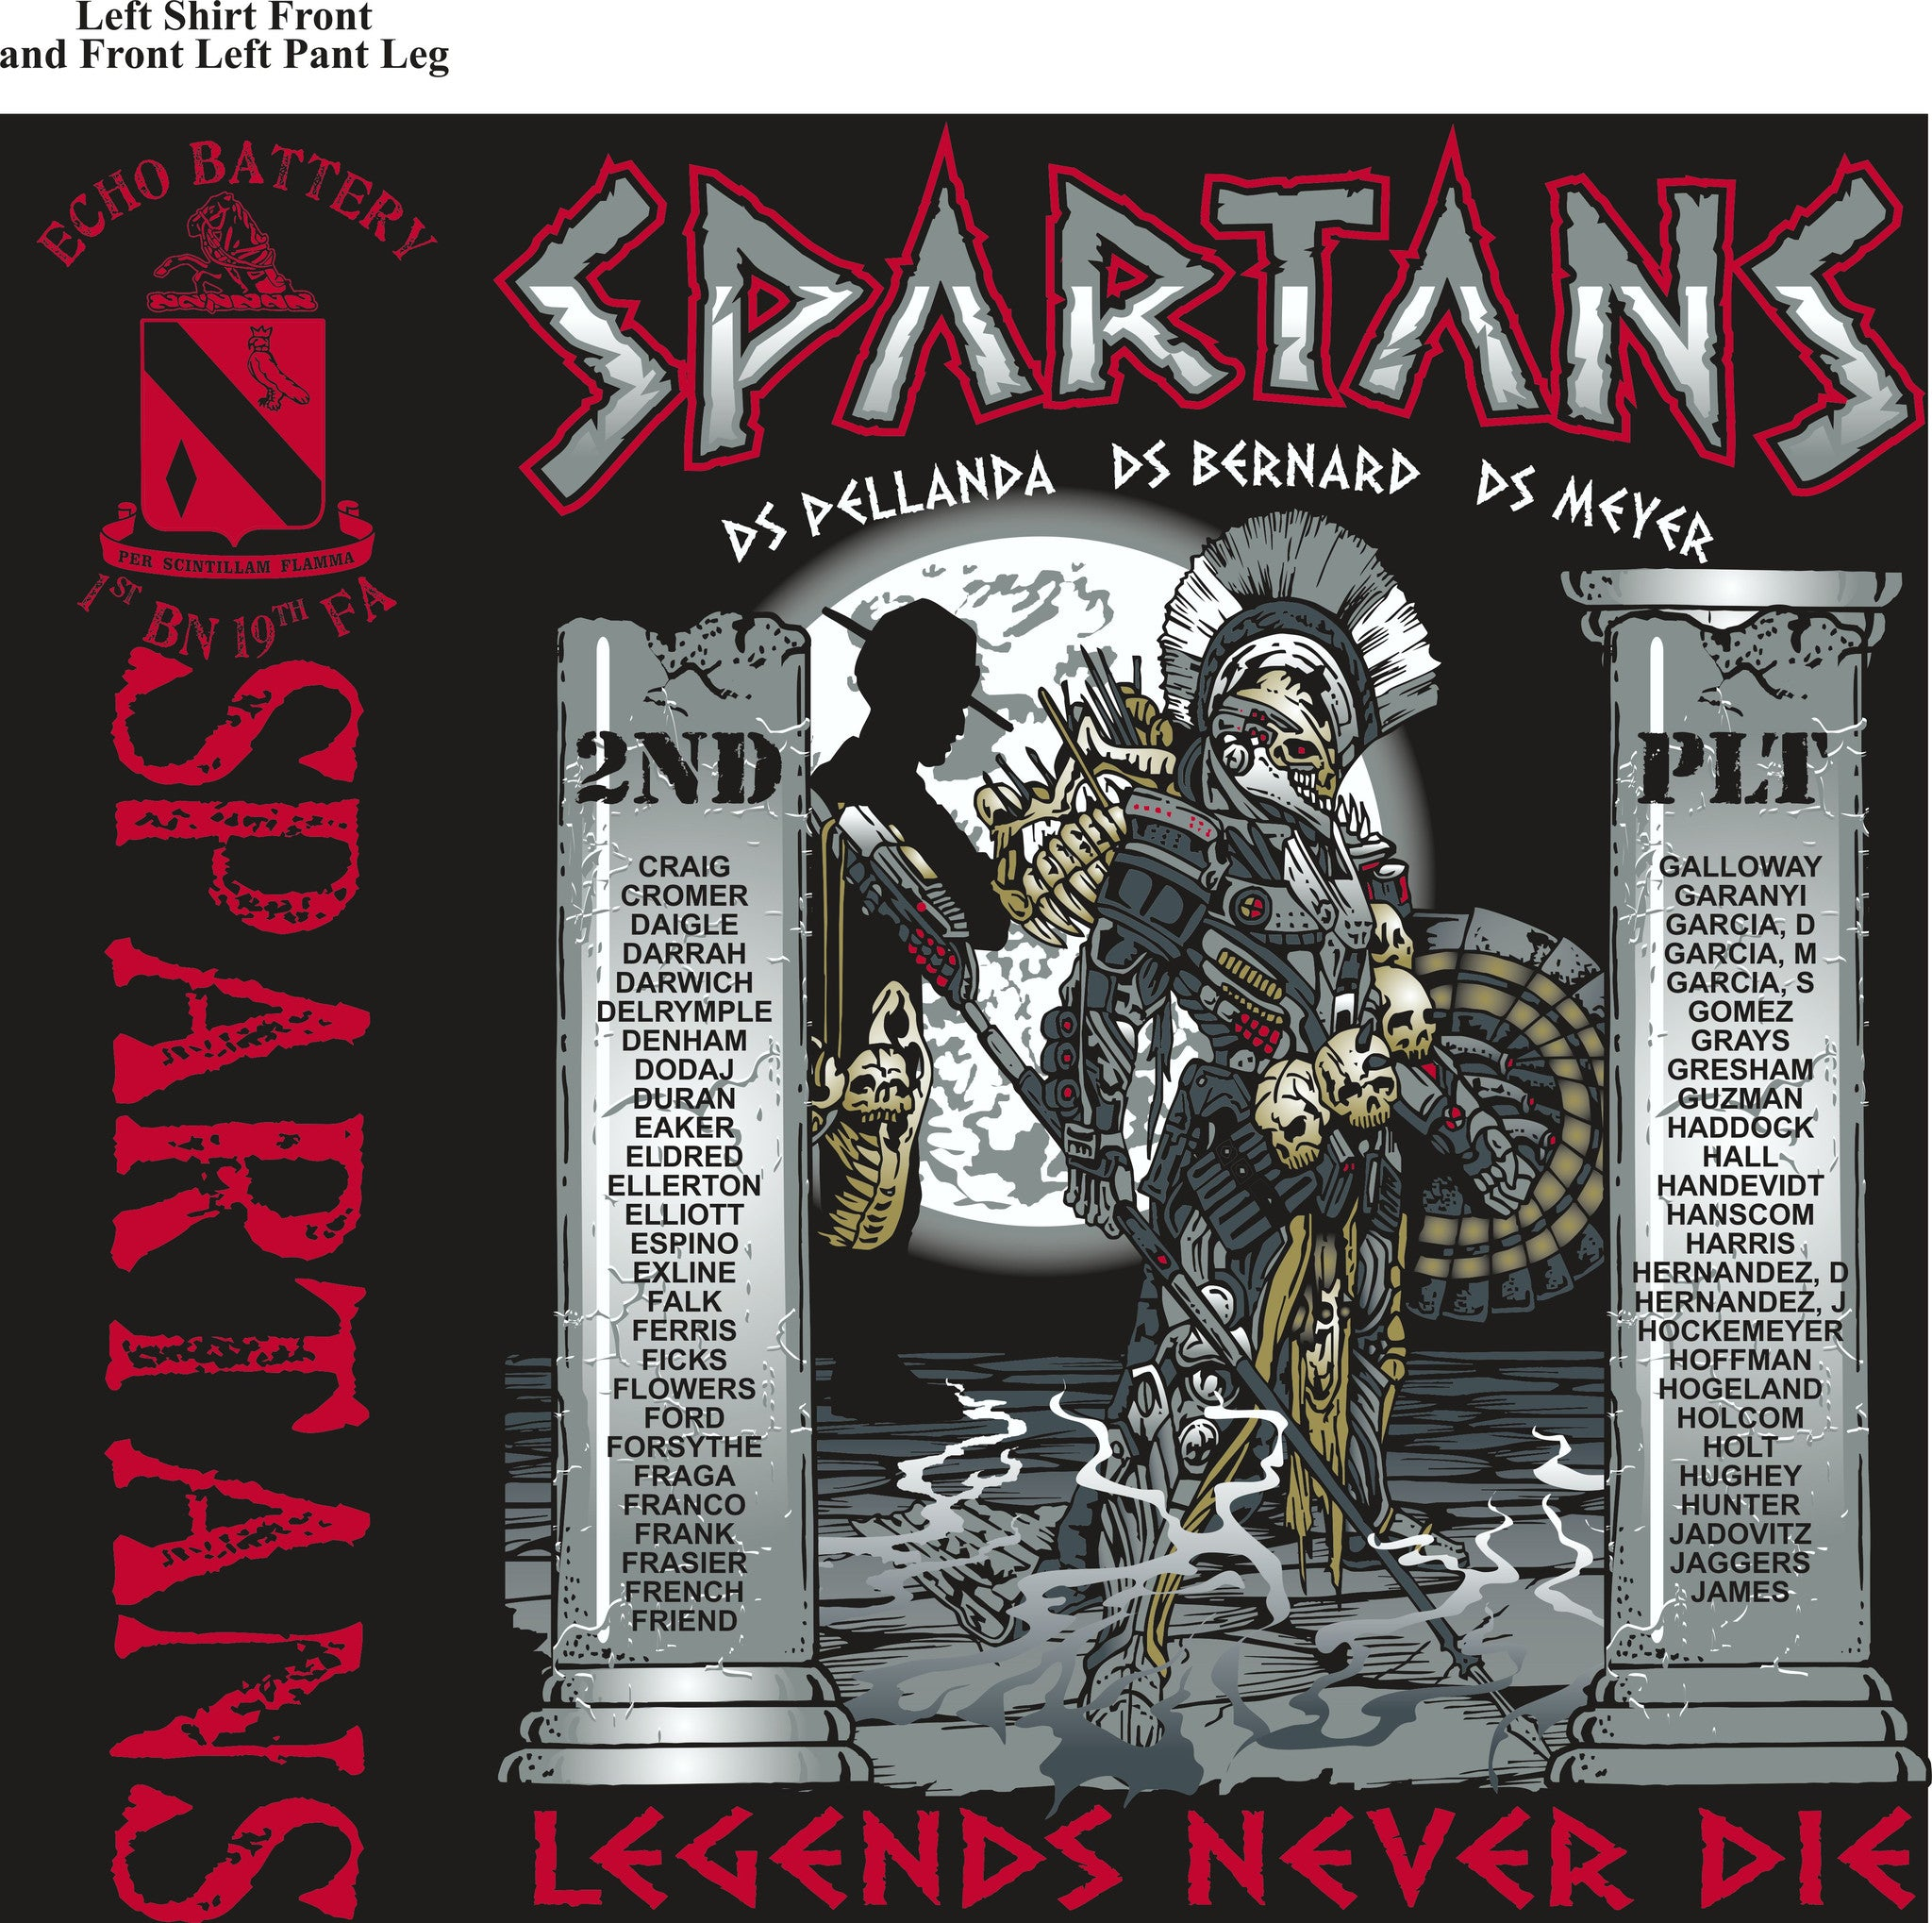 PLATOON SHIRTS (2nd generation print) ECHO 1st 19th SPARTANS OCT 2016